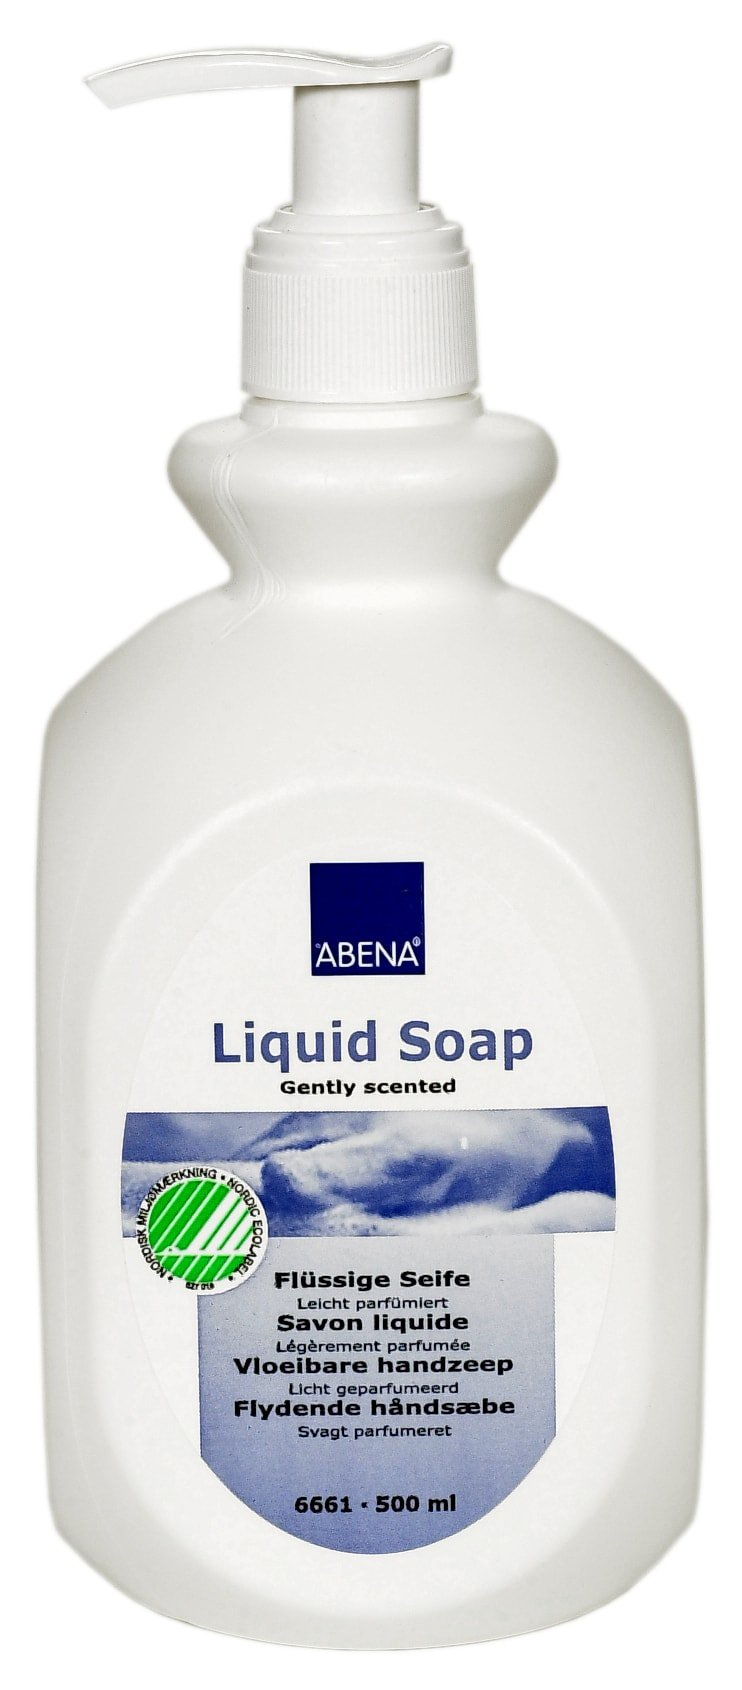 Abena Liquid Soap, Gently Scented, 500 mL, 6661, 1 Each